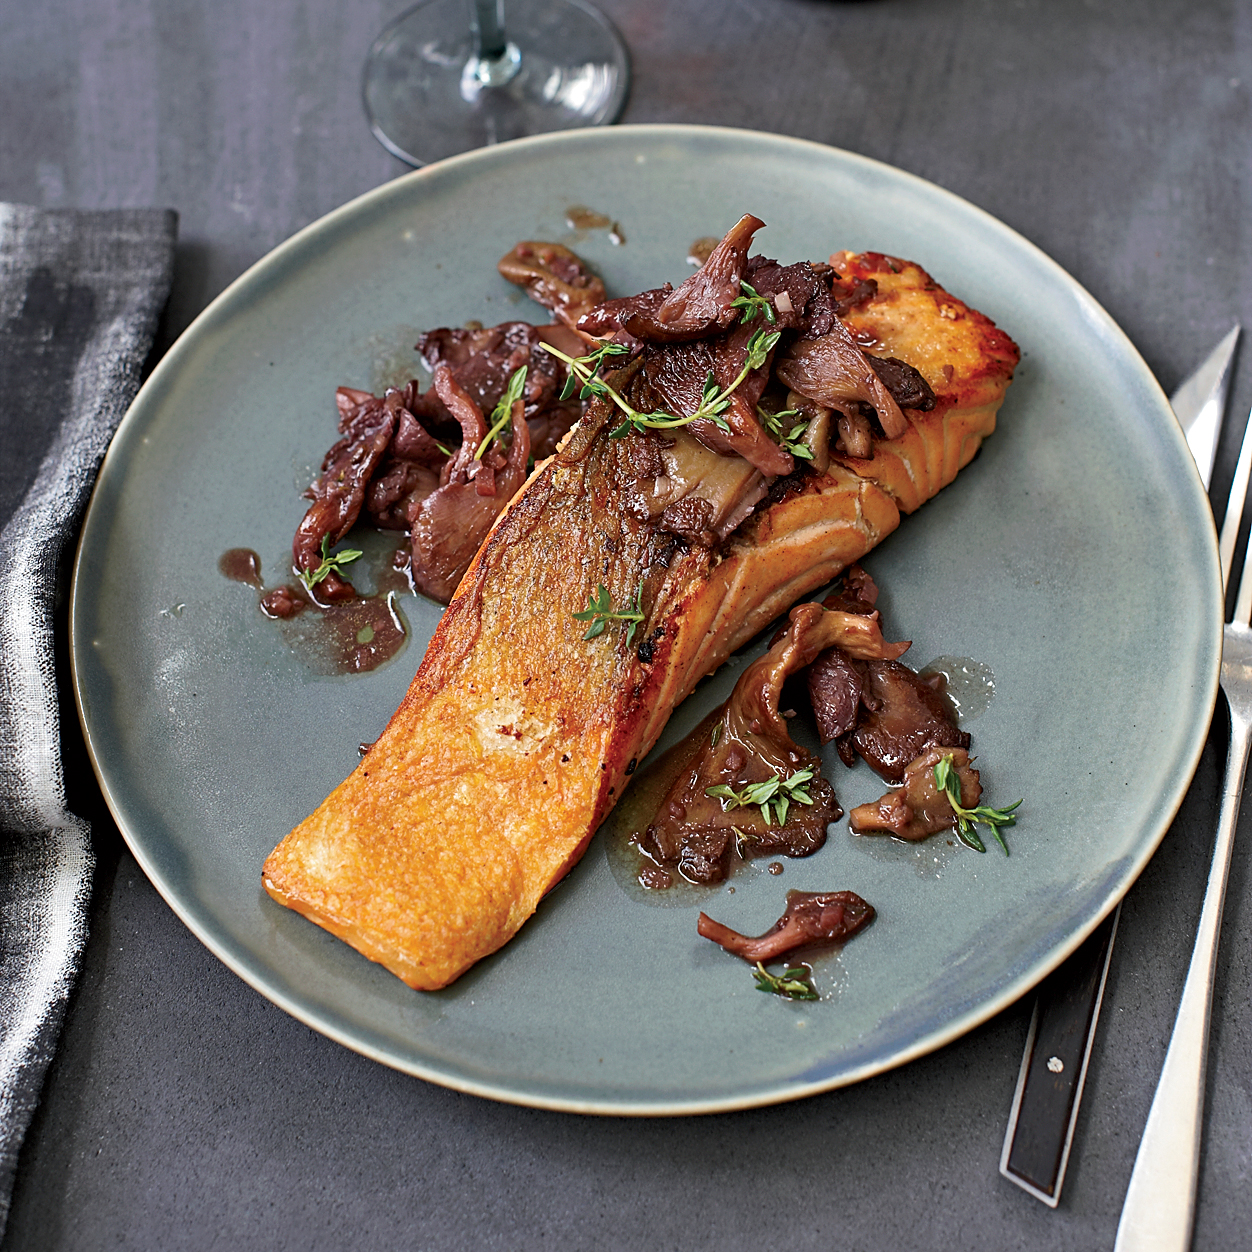 Roasted salmon with oyster mushrooms in red wine recipe jason 201010 r salmon mushroomsg ccuart Choice Image